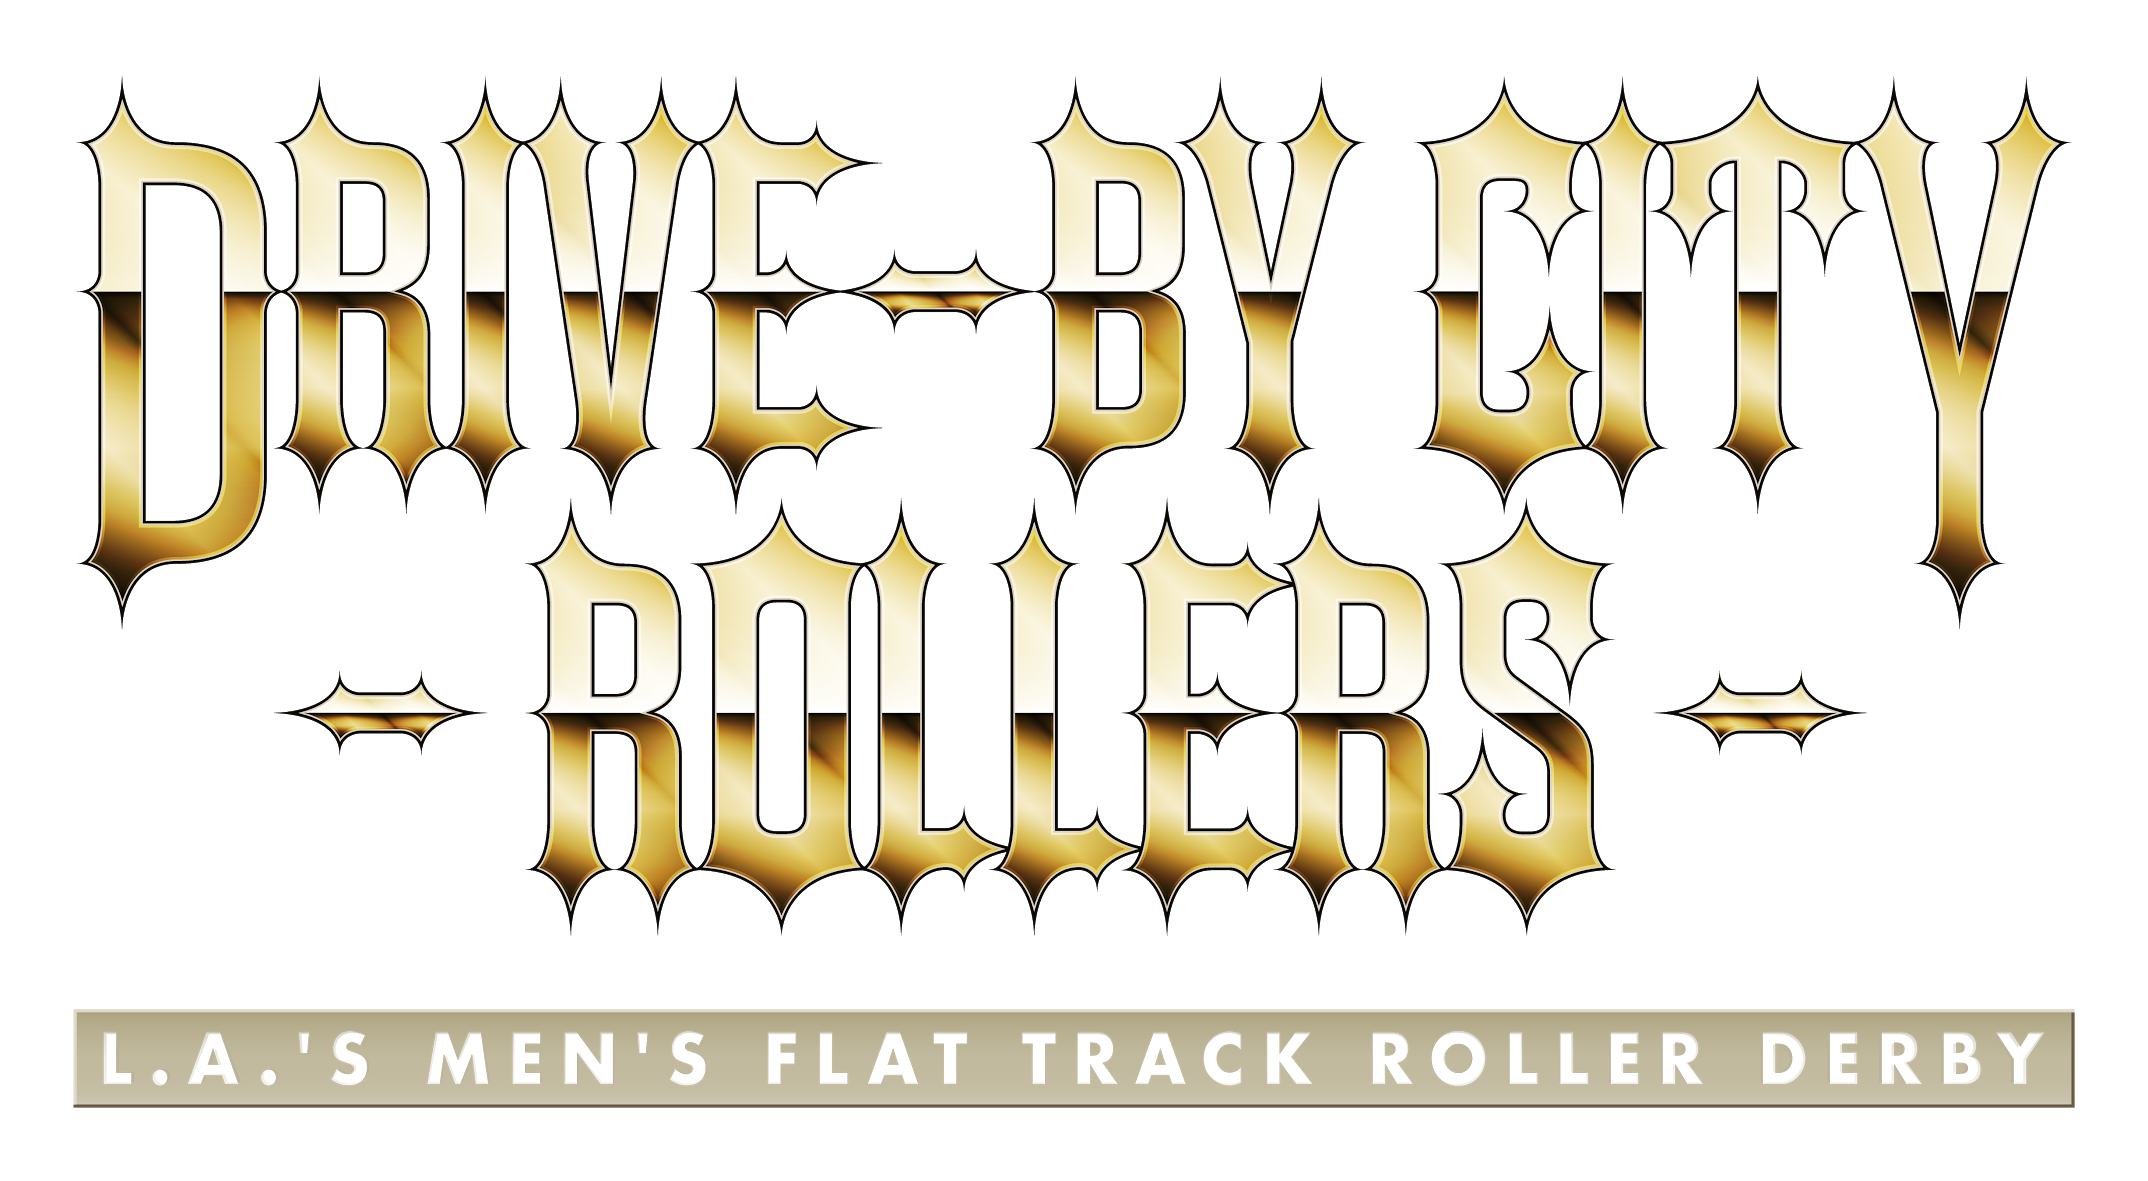 Drive-By City Rollers